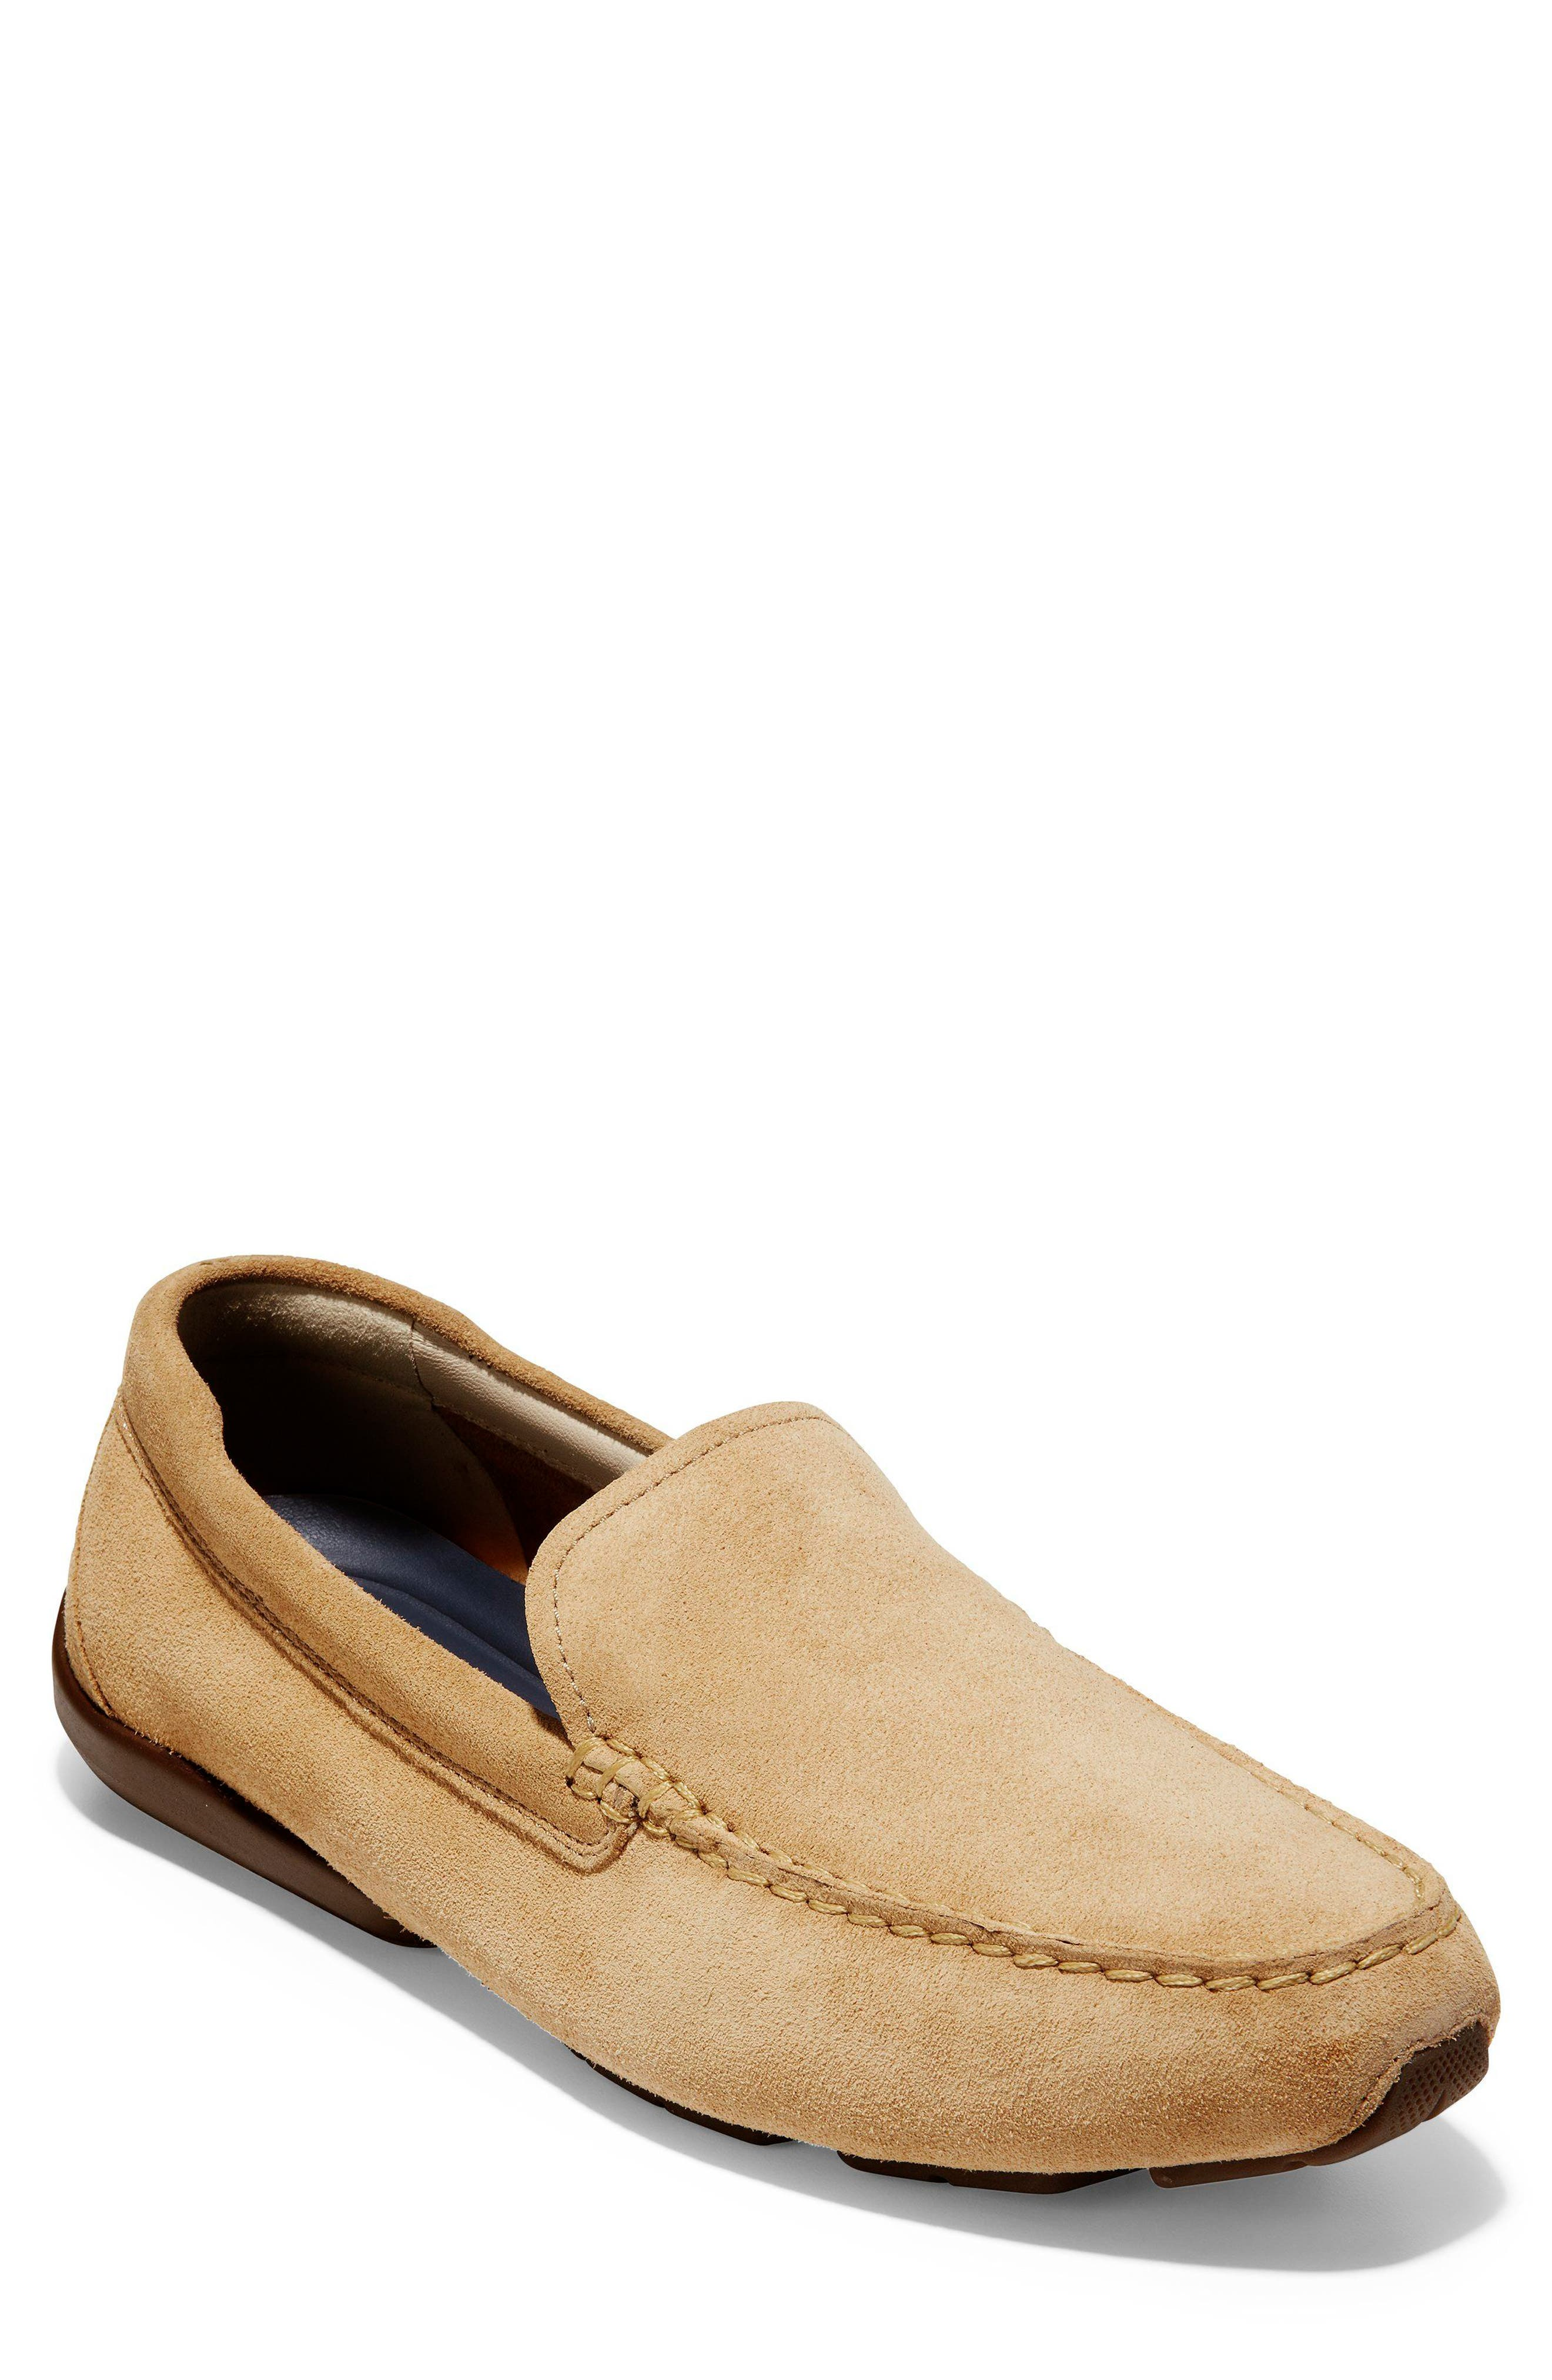 Branson Driving Shoe,                         Main,                         color, Iced Coffee Suede